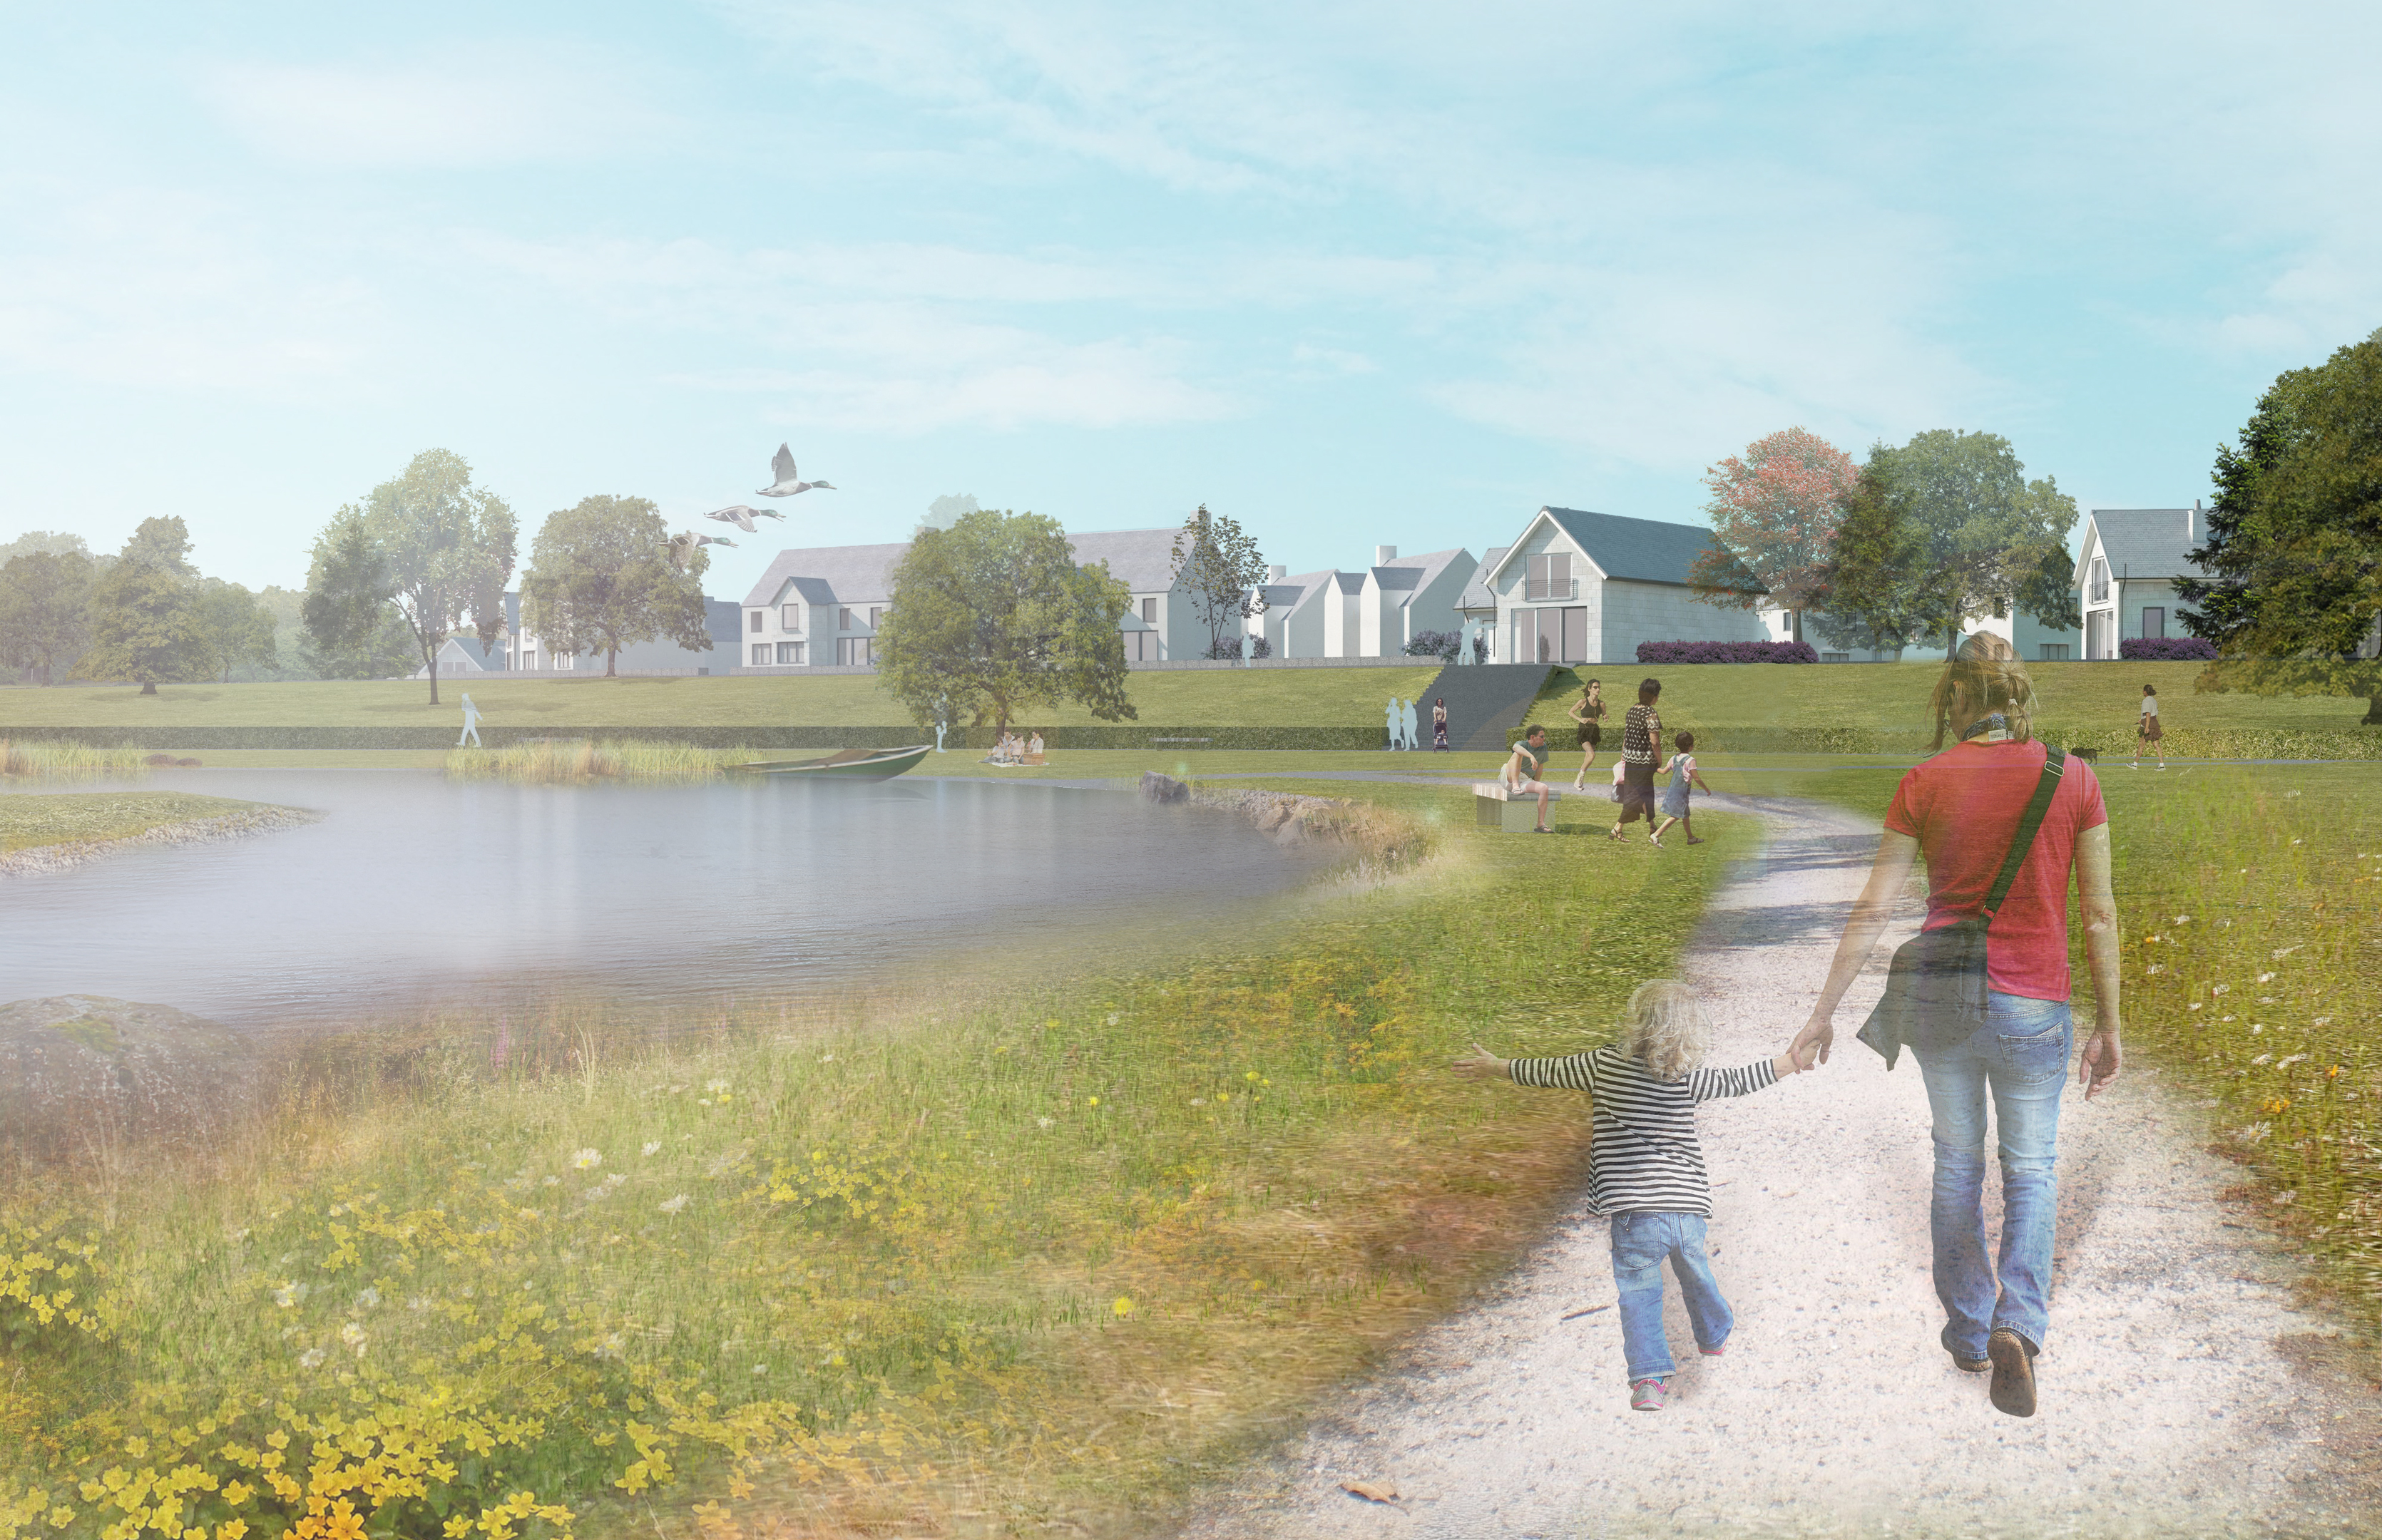 New images of the plans for 1,500-home Kincluny Village development in Drumoak.